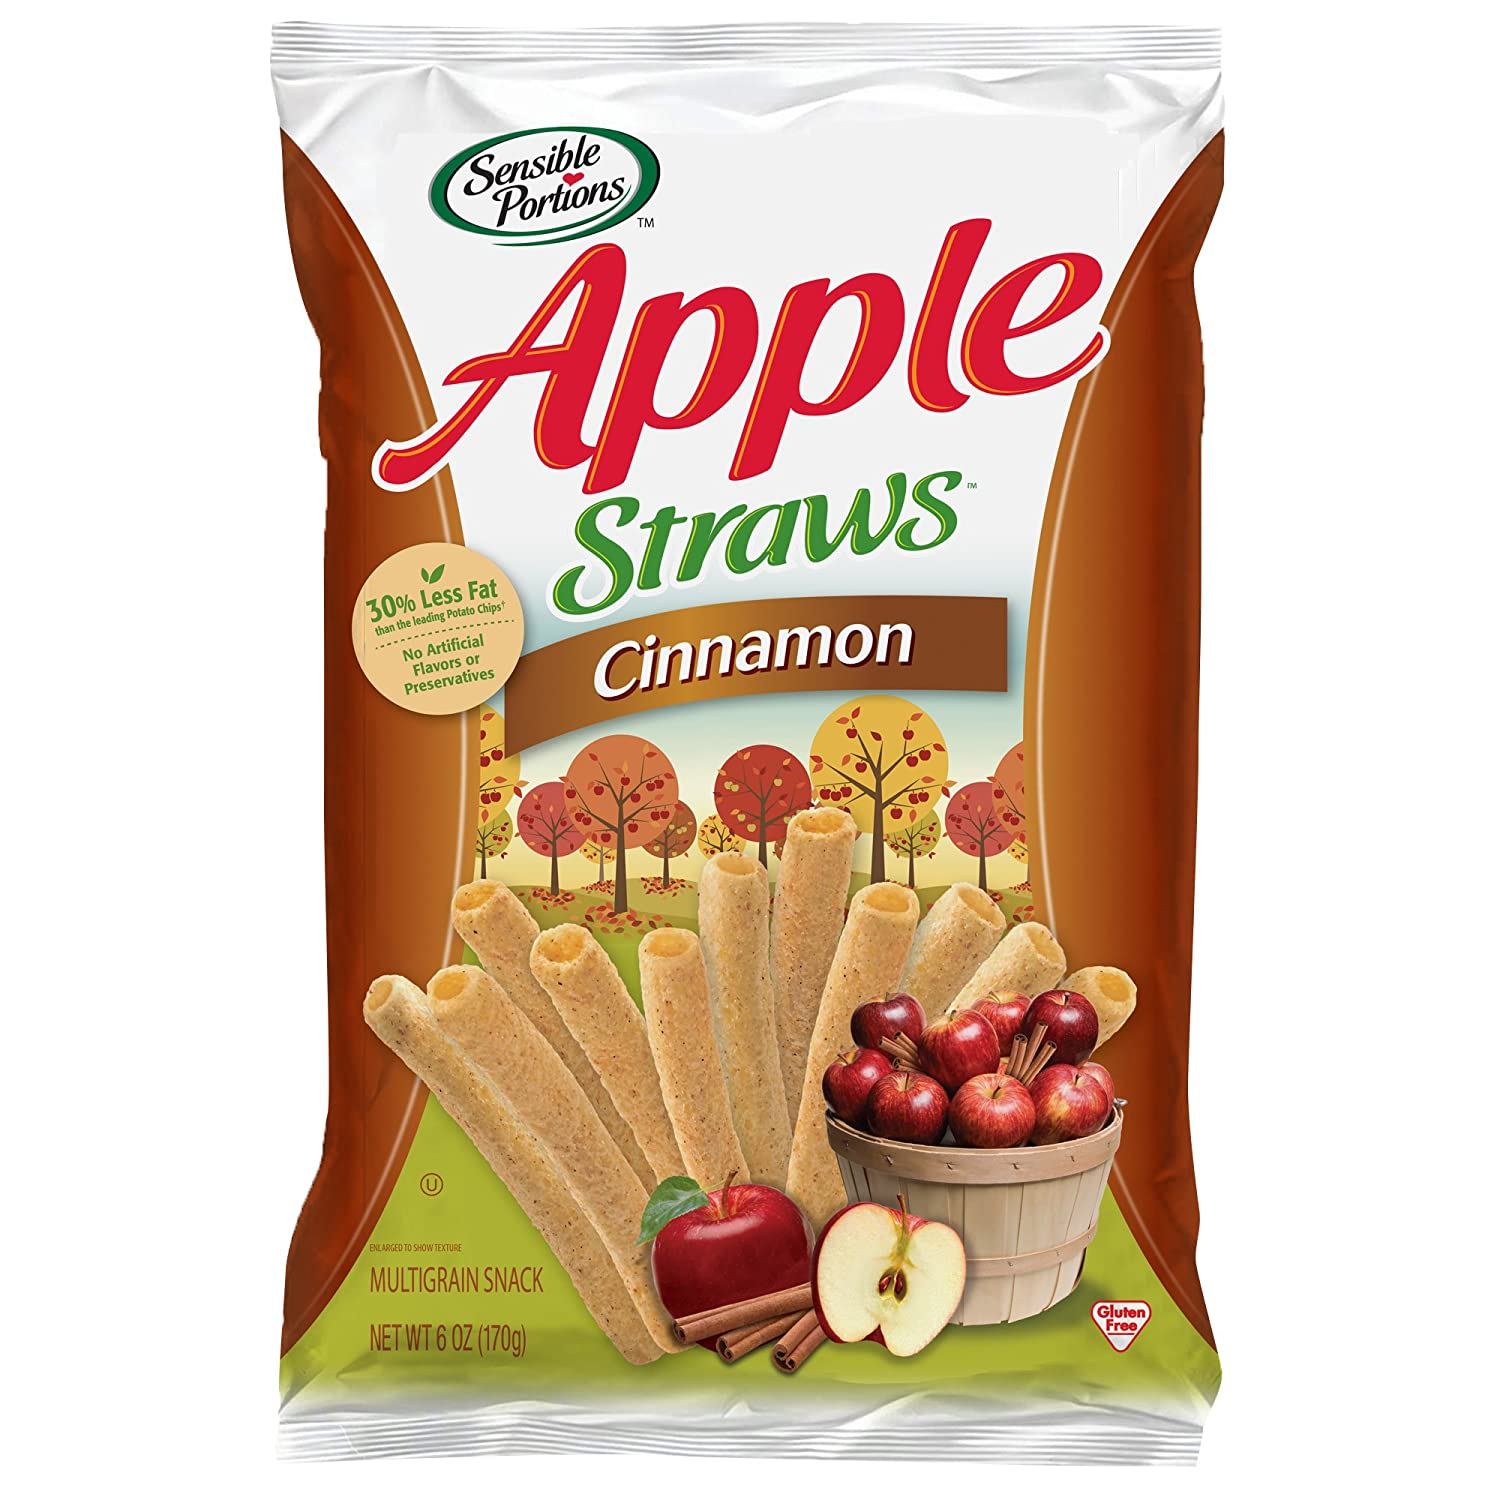 Sensible Portions Apple Straws, Cinnamon, 6 oz. (Pack of 6)